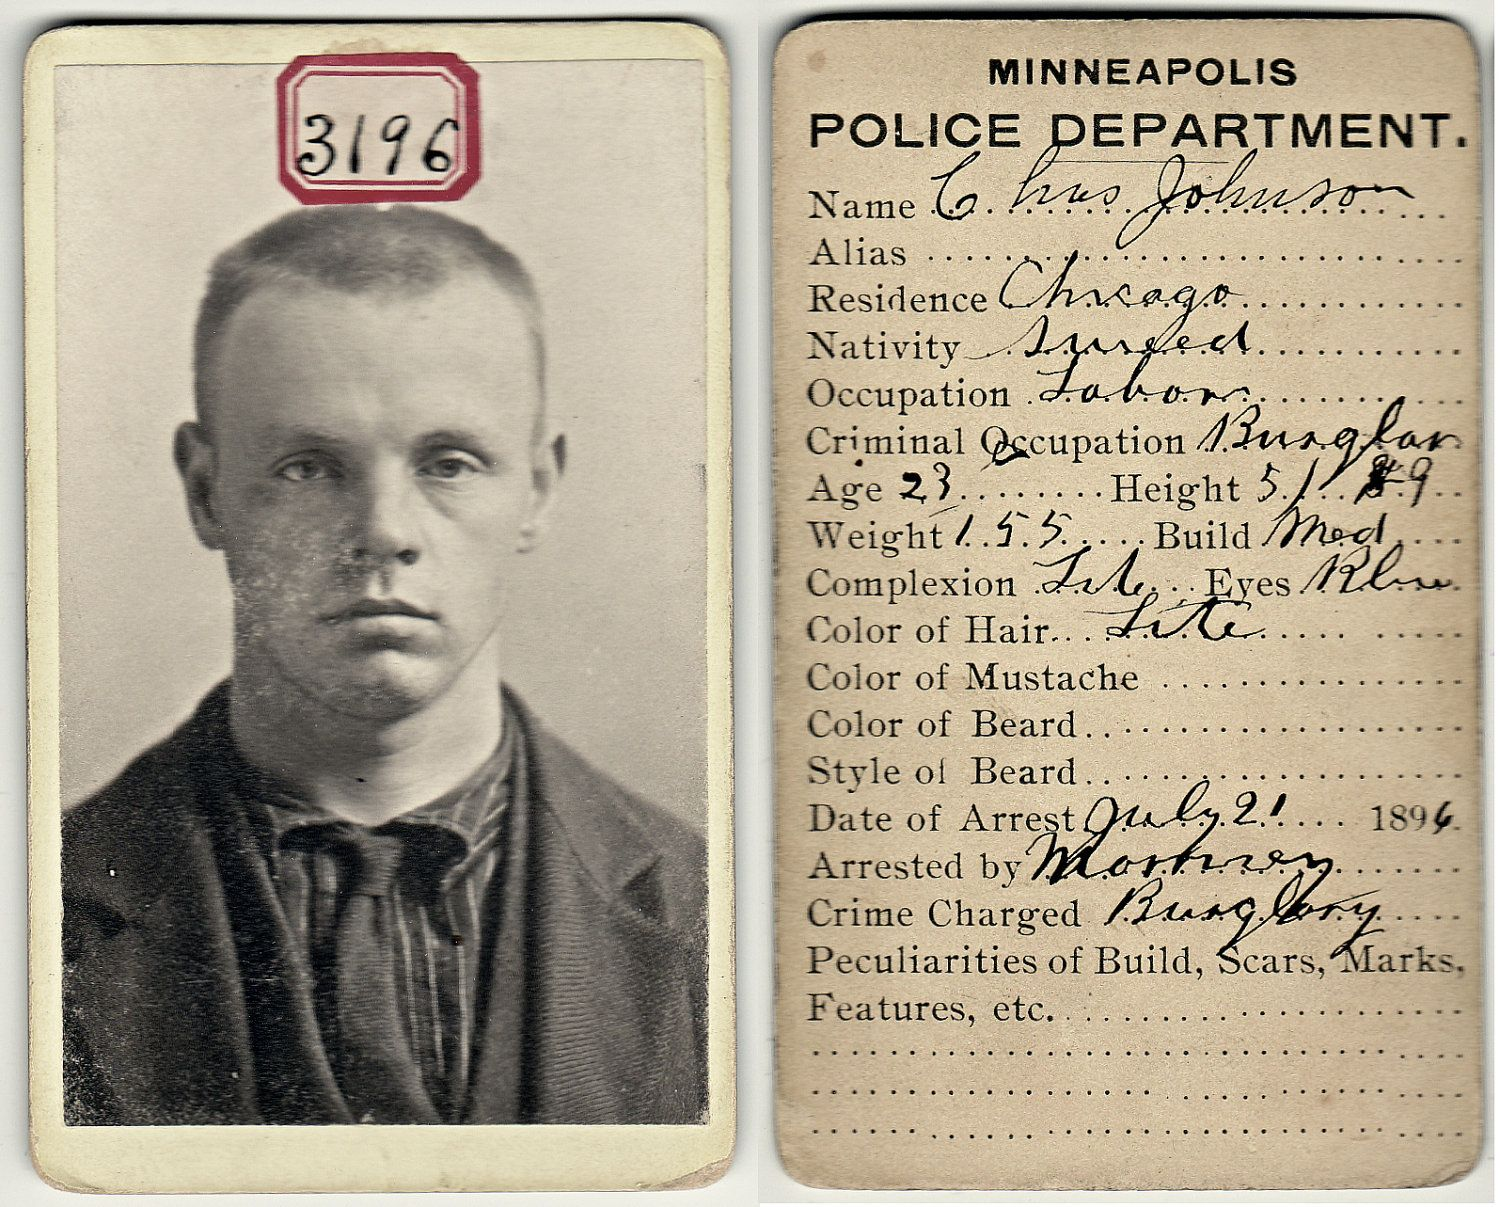 Prisoner No 3196 - Victorian Mug Shot Minneapolis - Vintage CDV Bertillon Photo - Antique Mugshot - Swedish - RESERVED for Sherwood Donahue